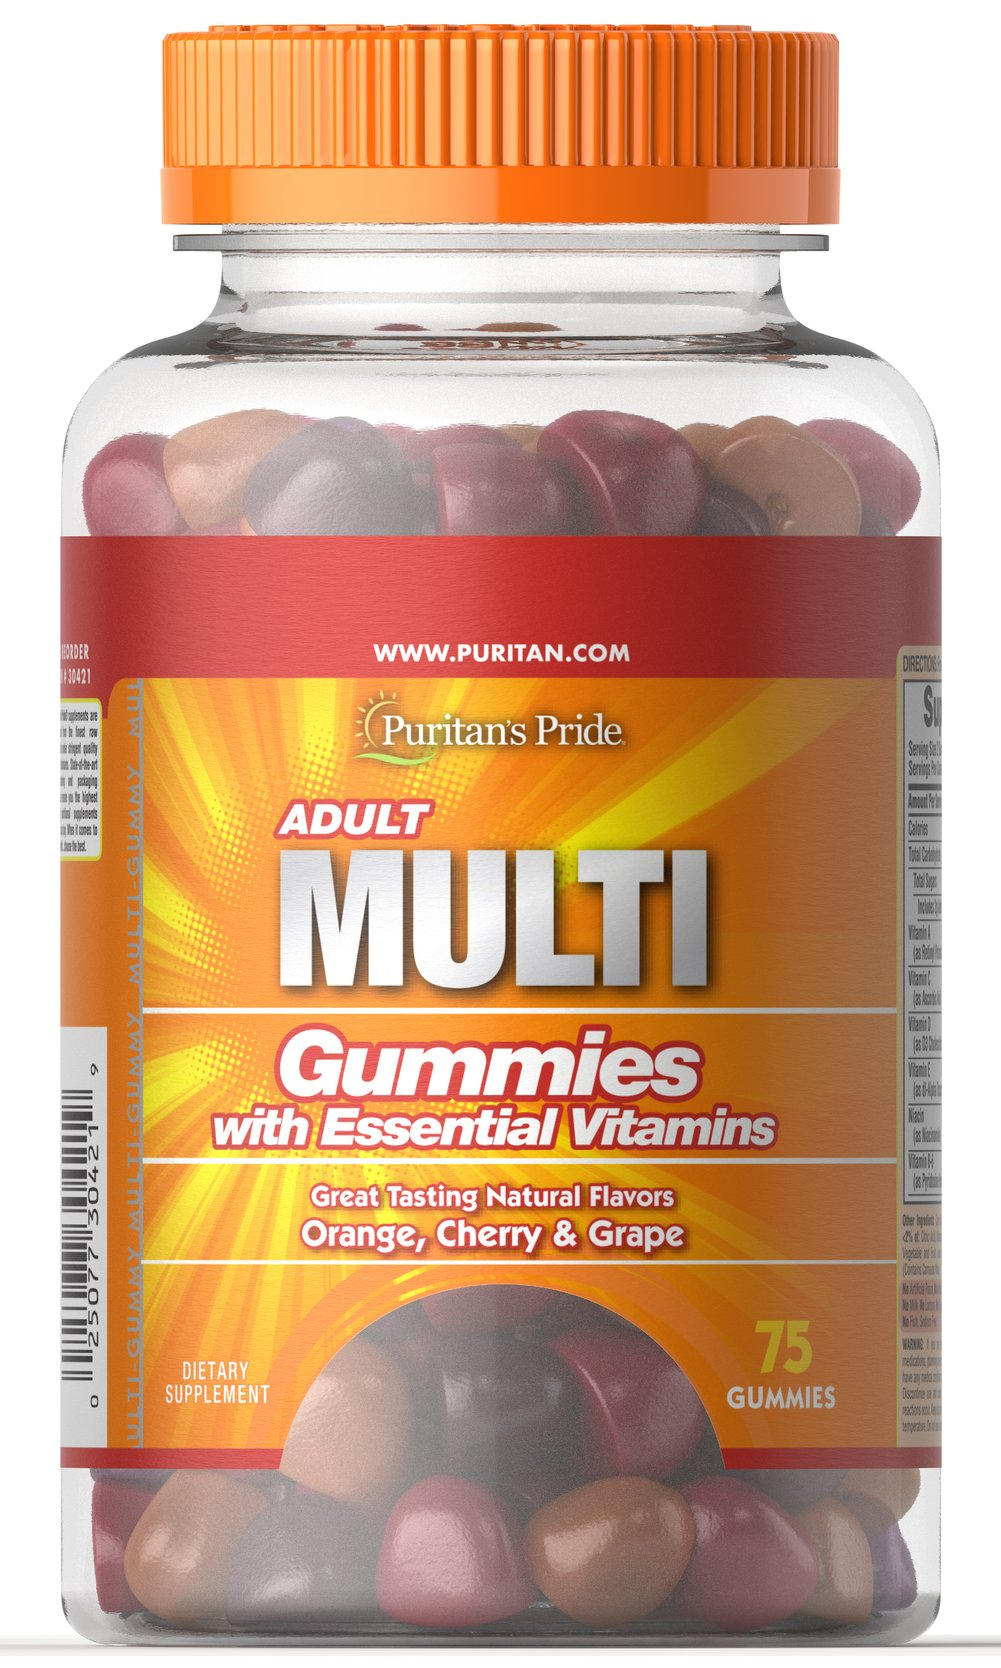 Adult Multivitamin Gummy with Fiber <p>An adult multivitamin that's delicious and fun to take</p><p>Vitamin and mineral support for your heart, eyes, bones and joints**</p><p>Great-tasting natural flavors include orange, cherry and grape</p><p>No artificial flavors or sweeteners</p> 75 Gummies  $18.99